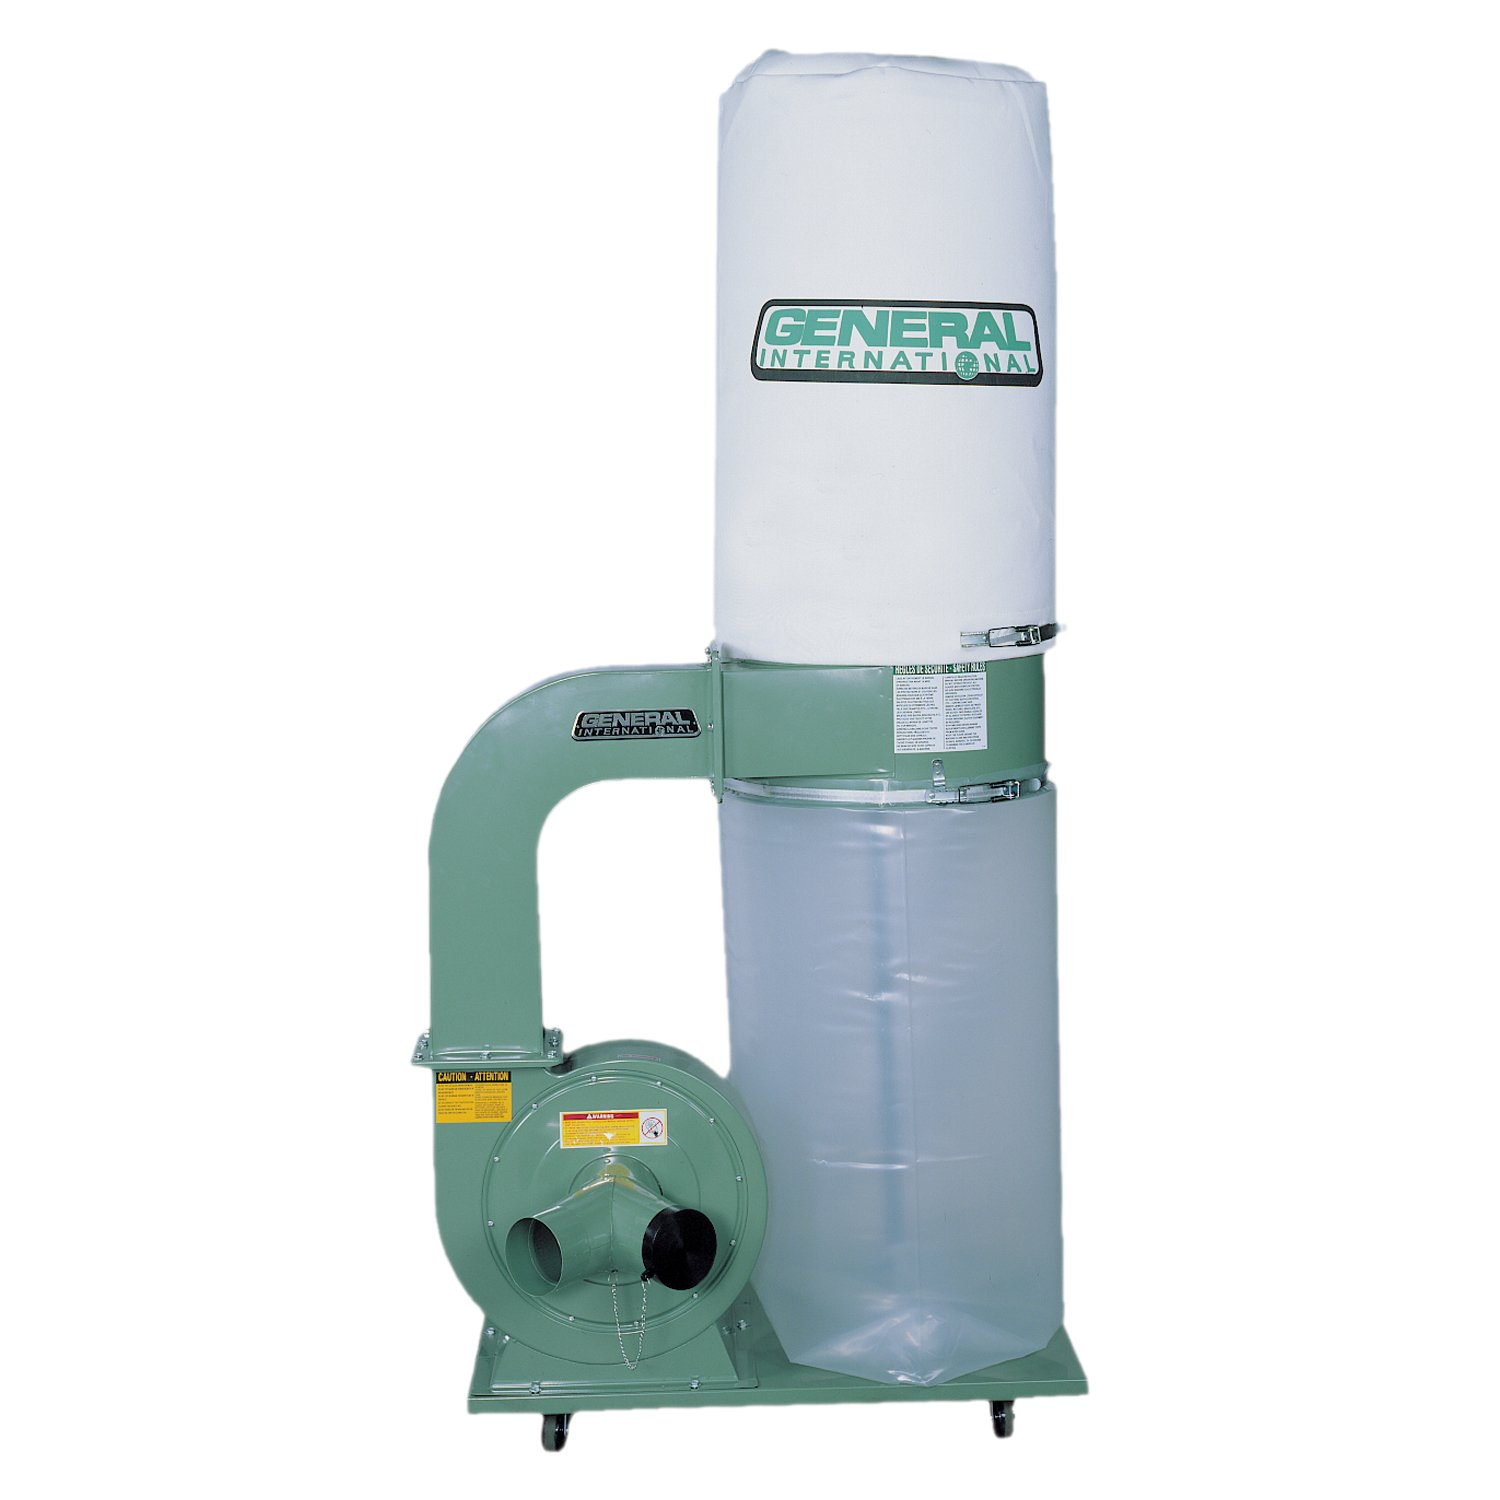 General International 10-110 M1 2 HP Dust Collector